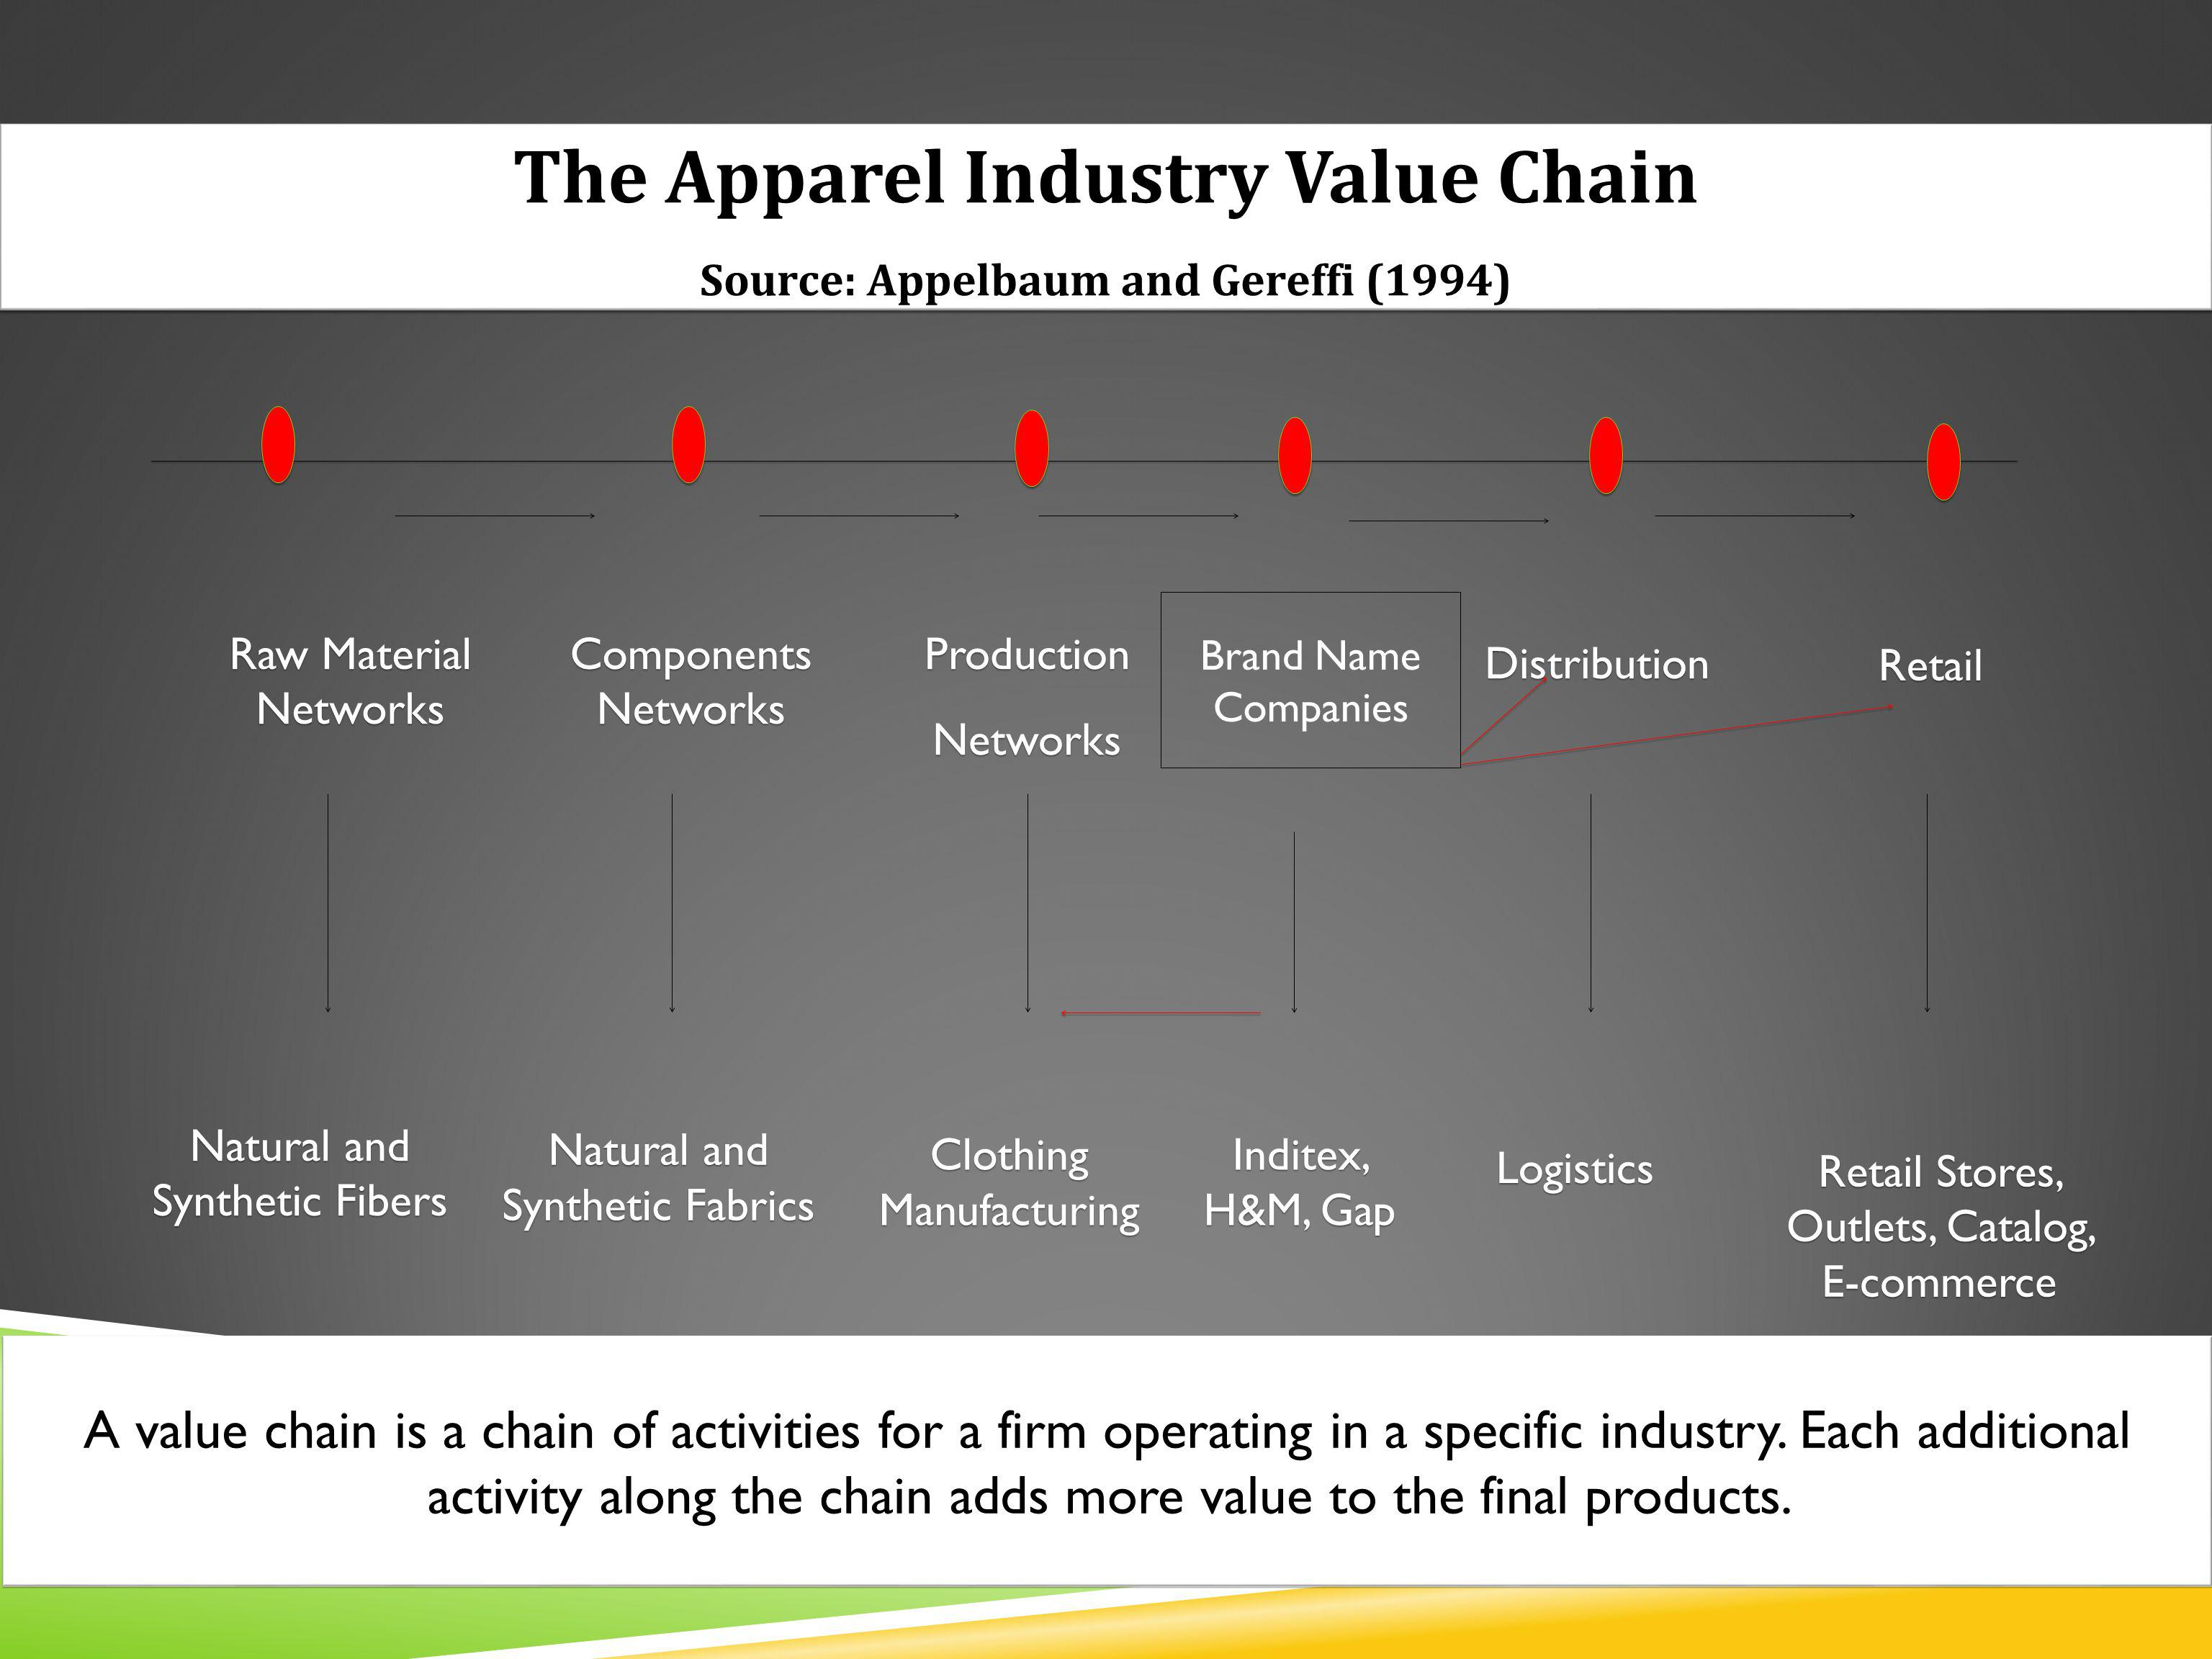 The Apparel Industry Value Chain Source: Appelbaum and Gereffi (1994)